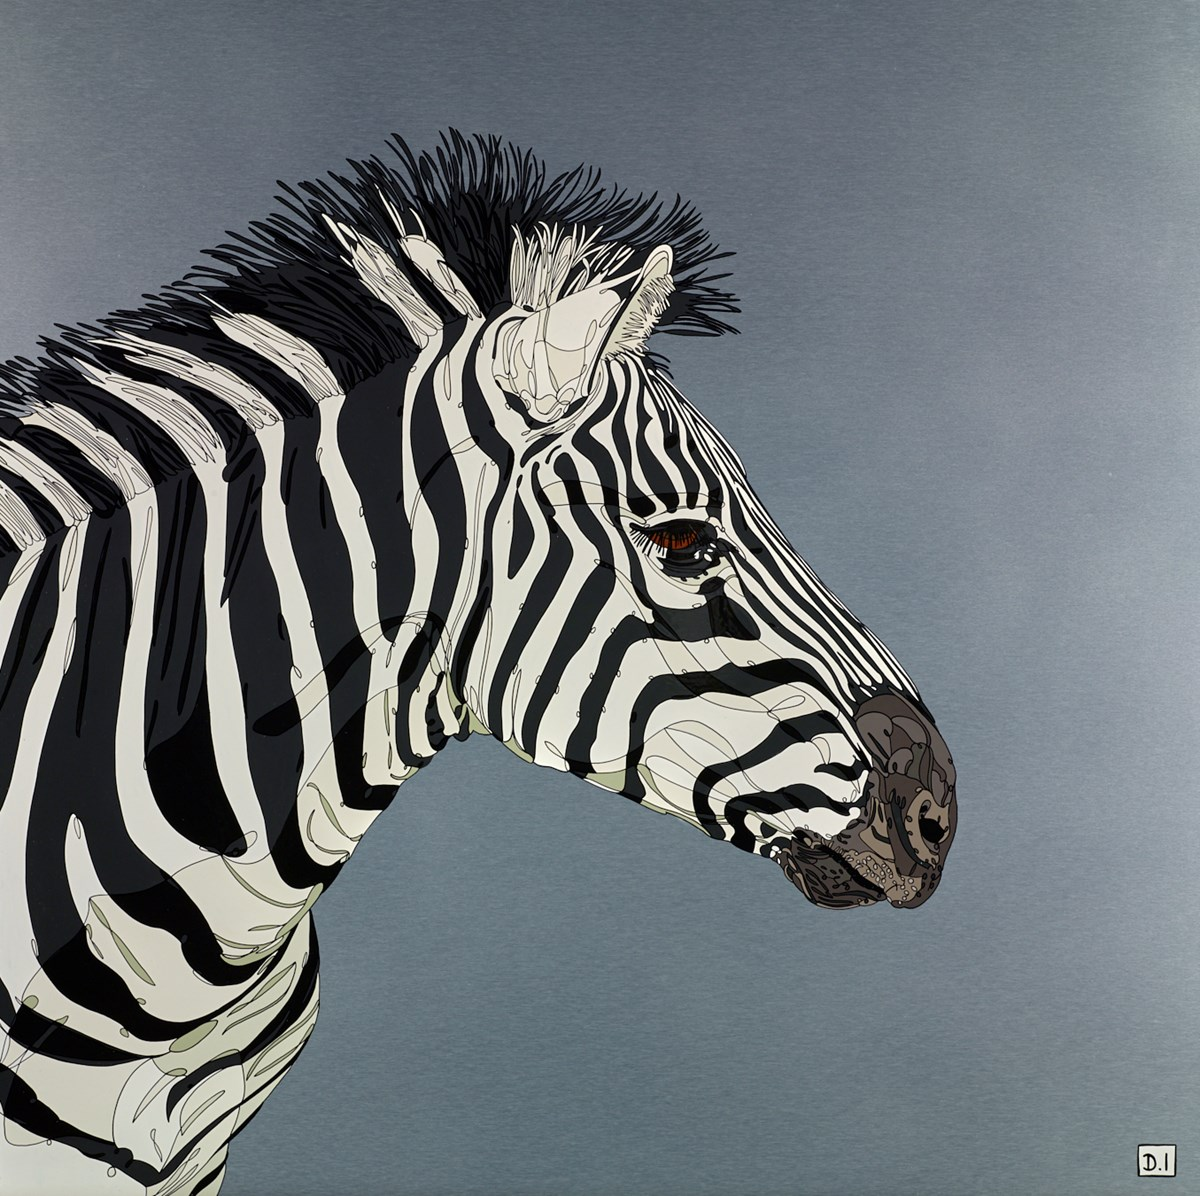 Zebra Crossing by dylan izaak -  sized 36x36 inches. Available from Whitewall Galleries